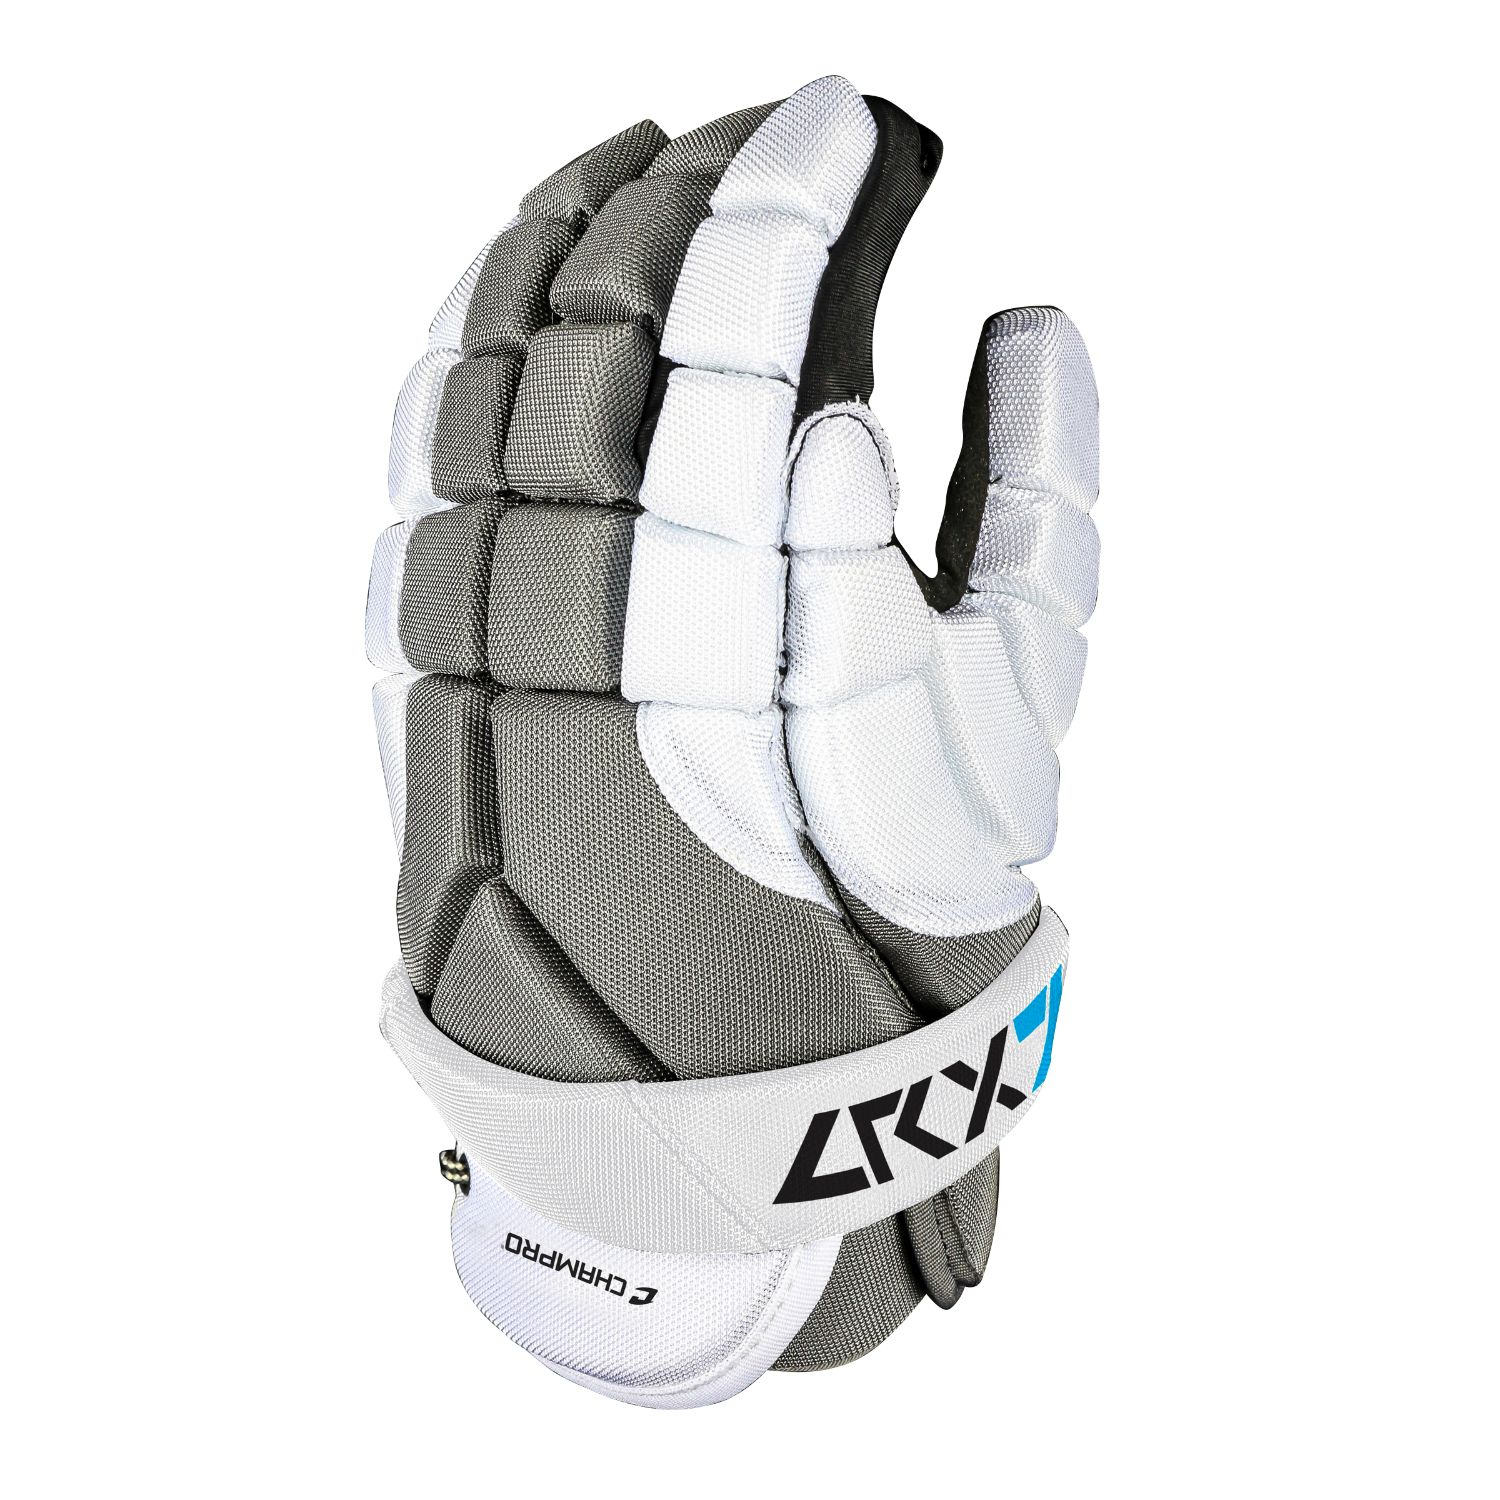 Champro LRX7 6 in Lacrosse Glove  Grey White Extra Small